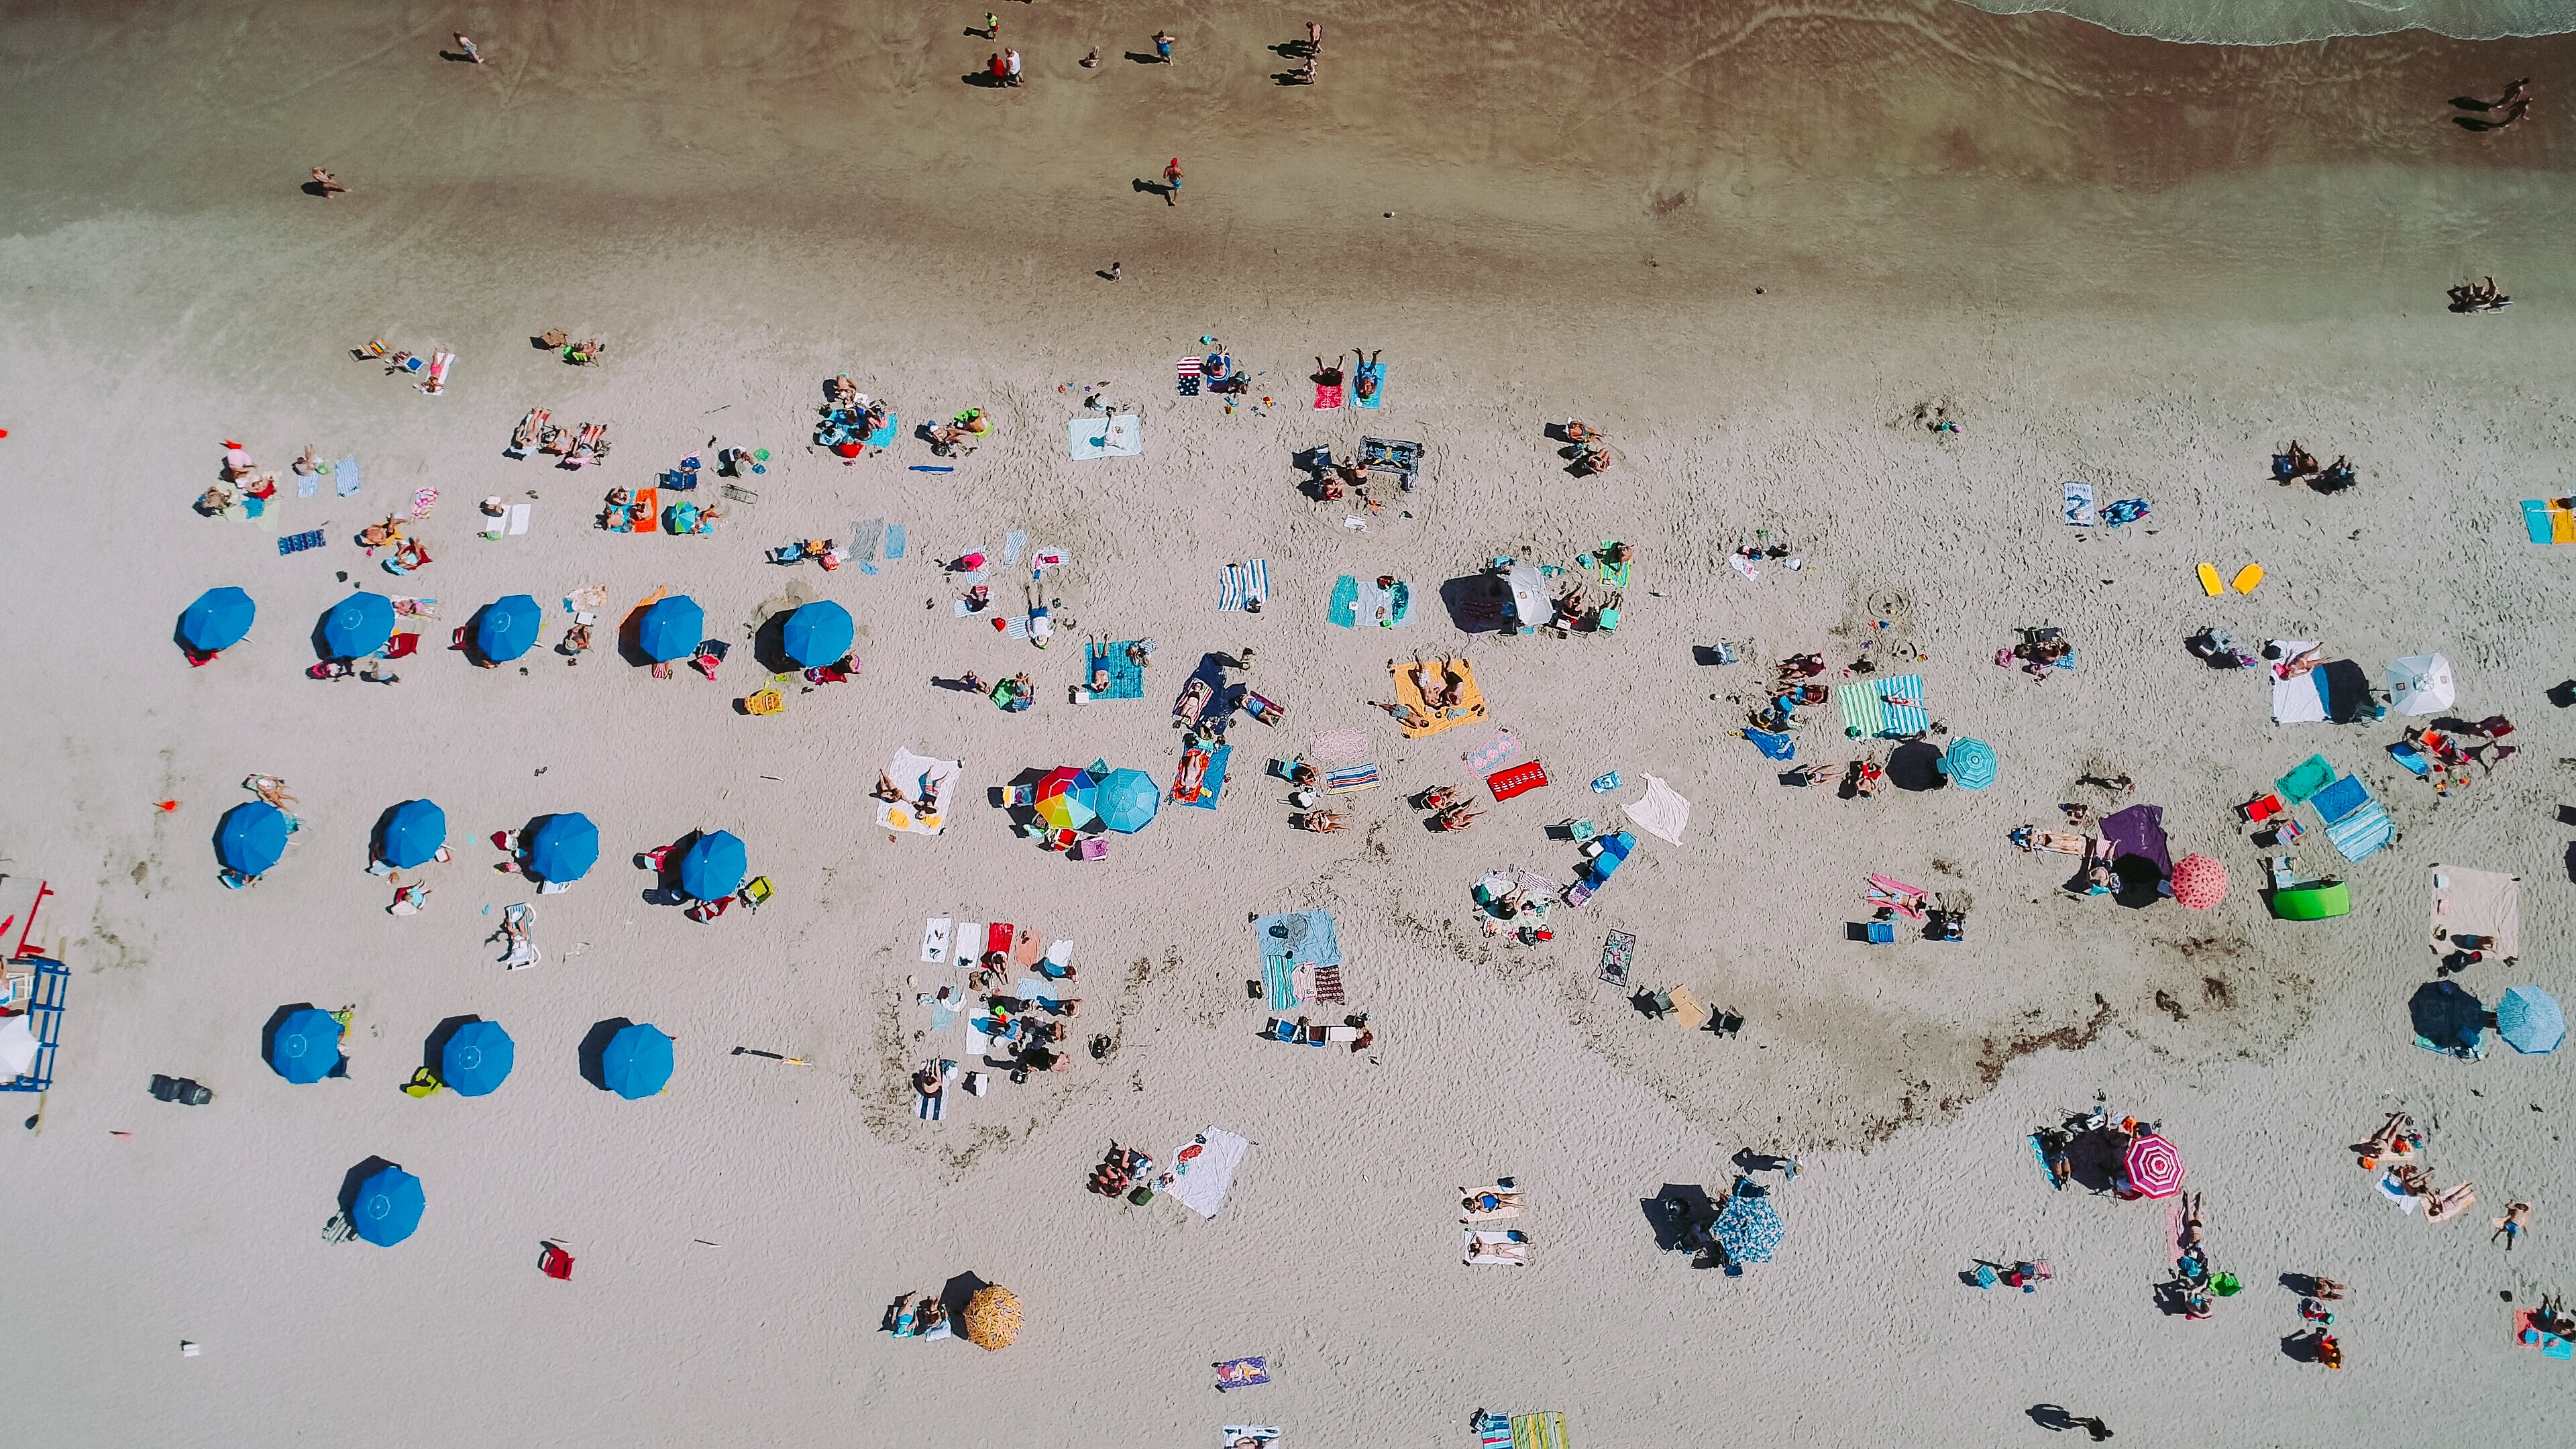 aerial photography of people on sea shore near parasols